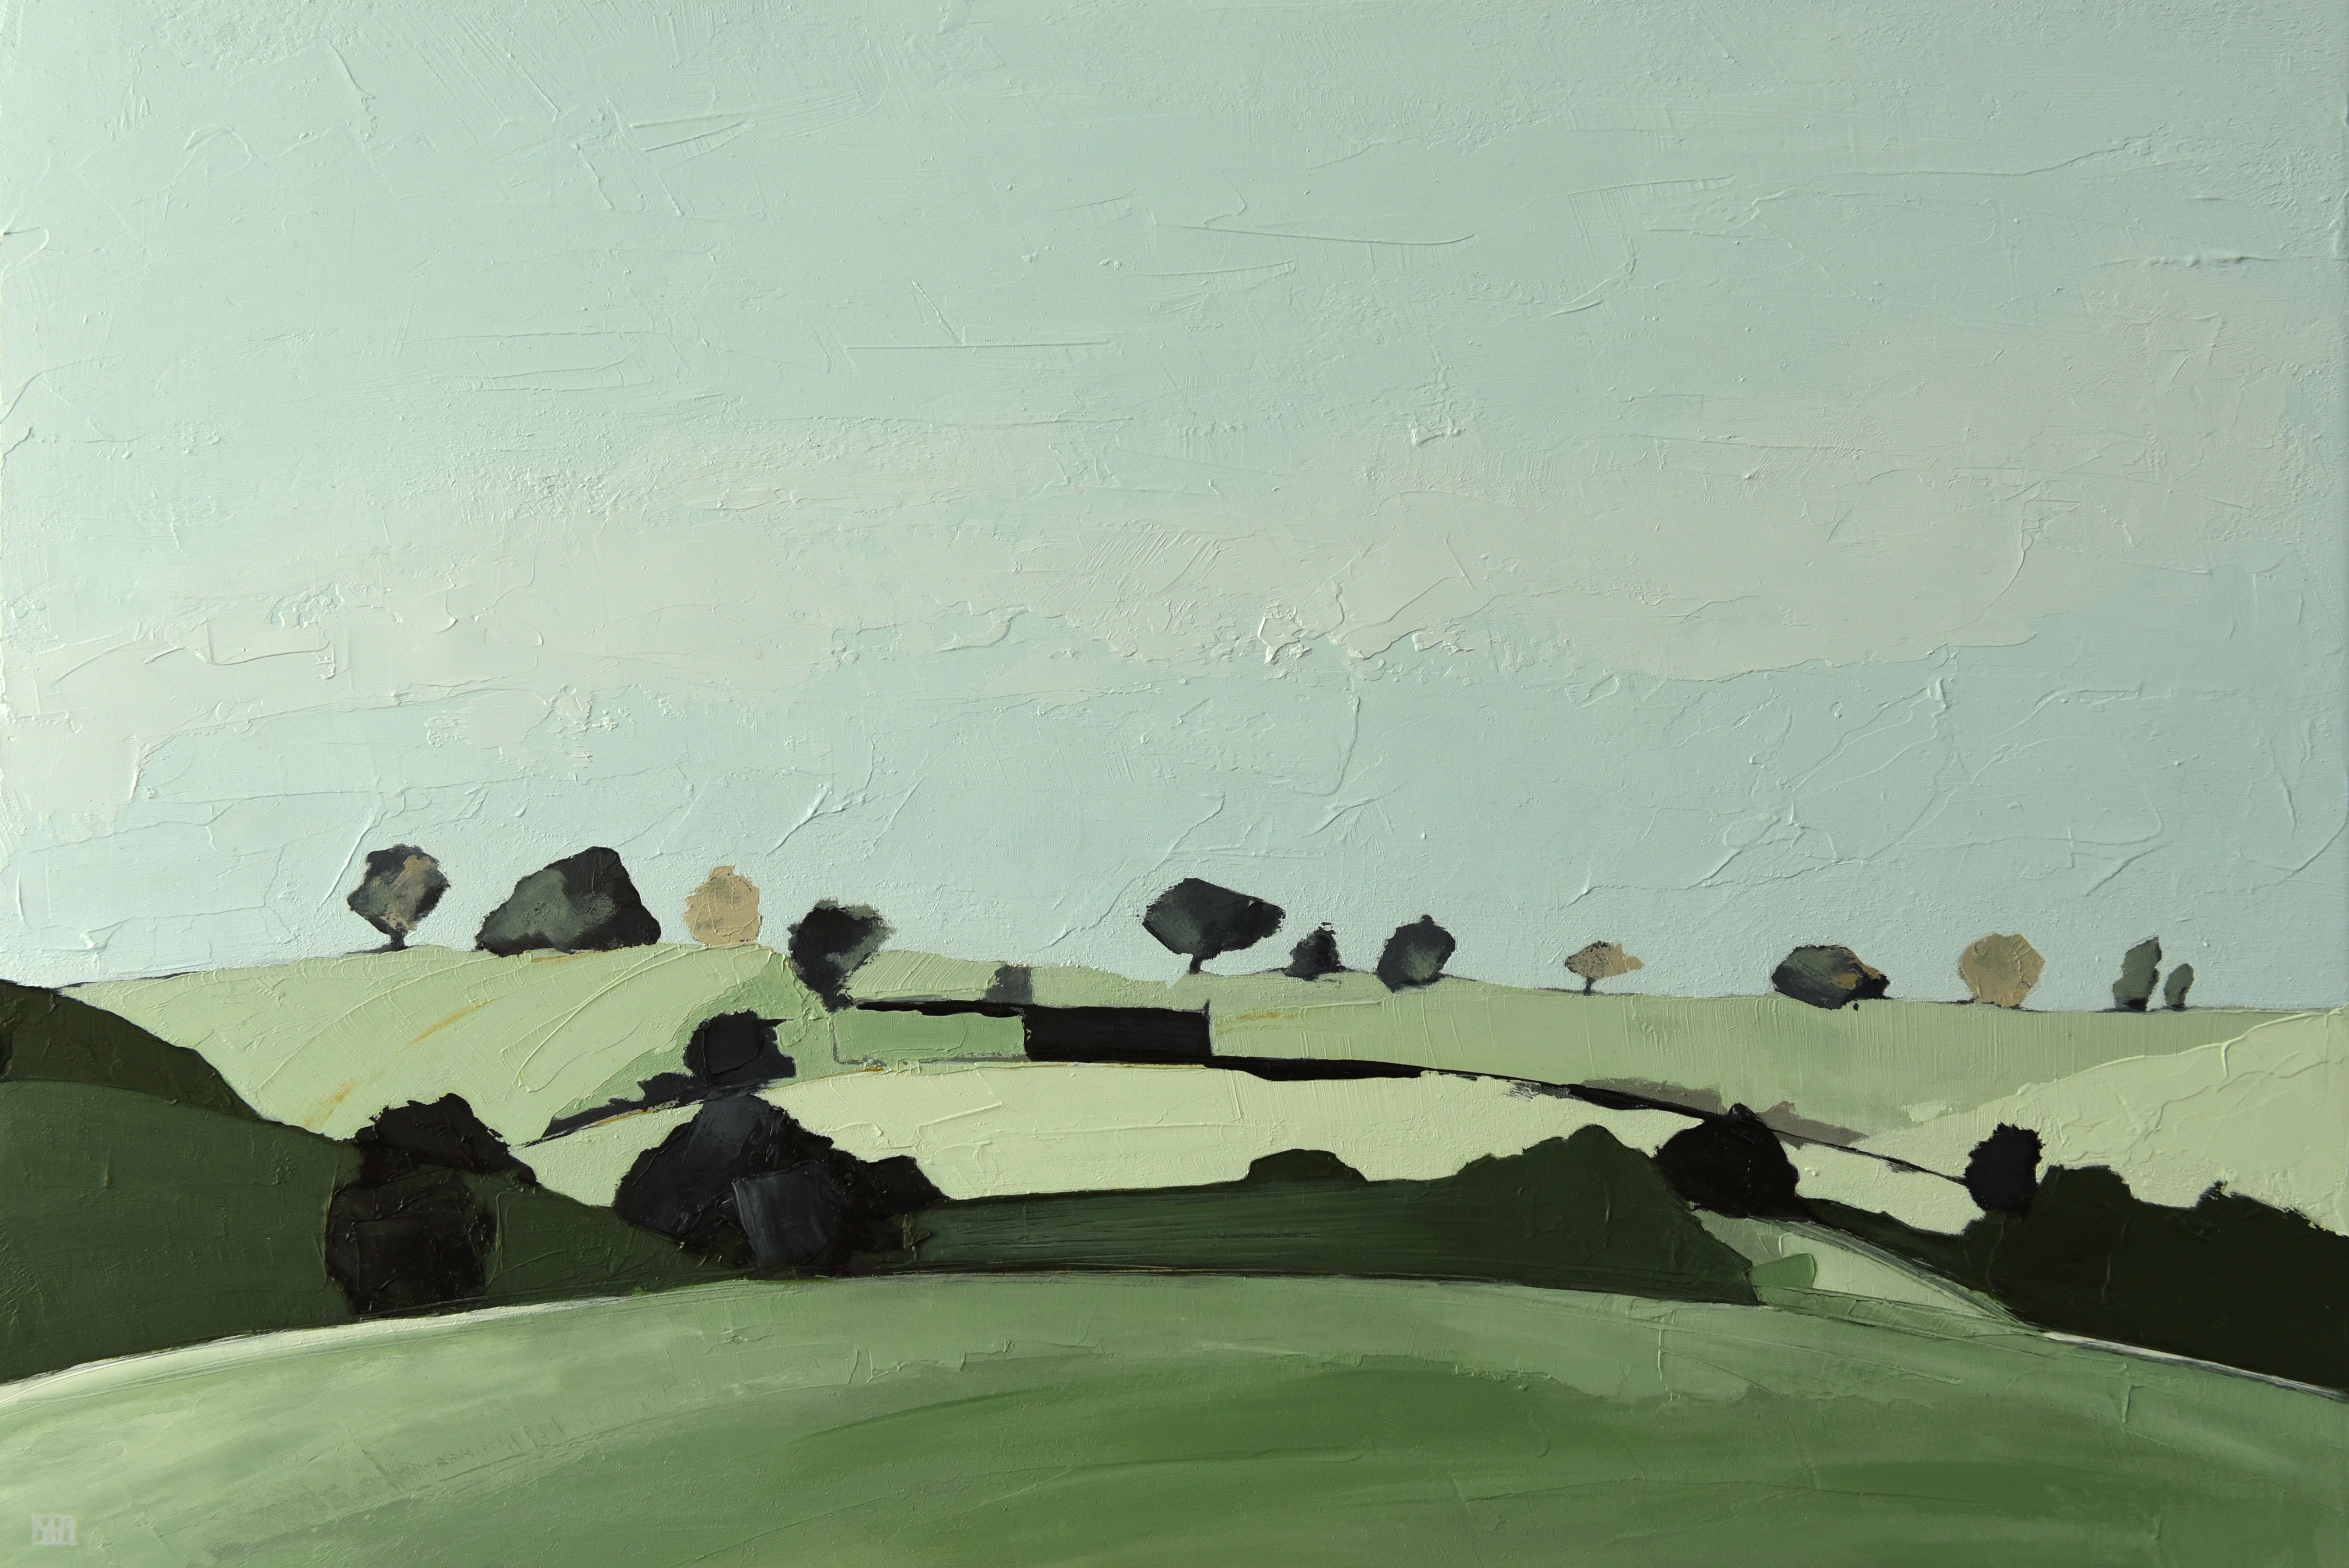 View from Sharpham (oil on board, 31.5 x 46.5, framed)